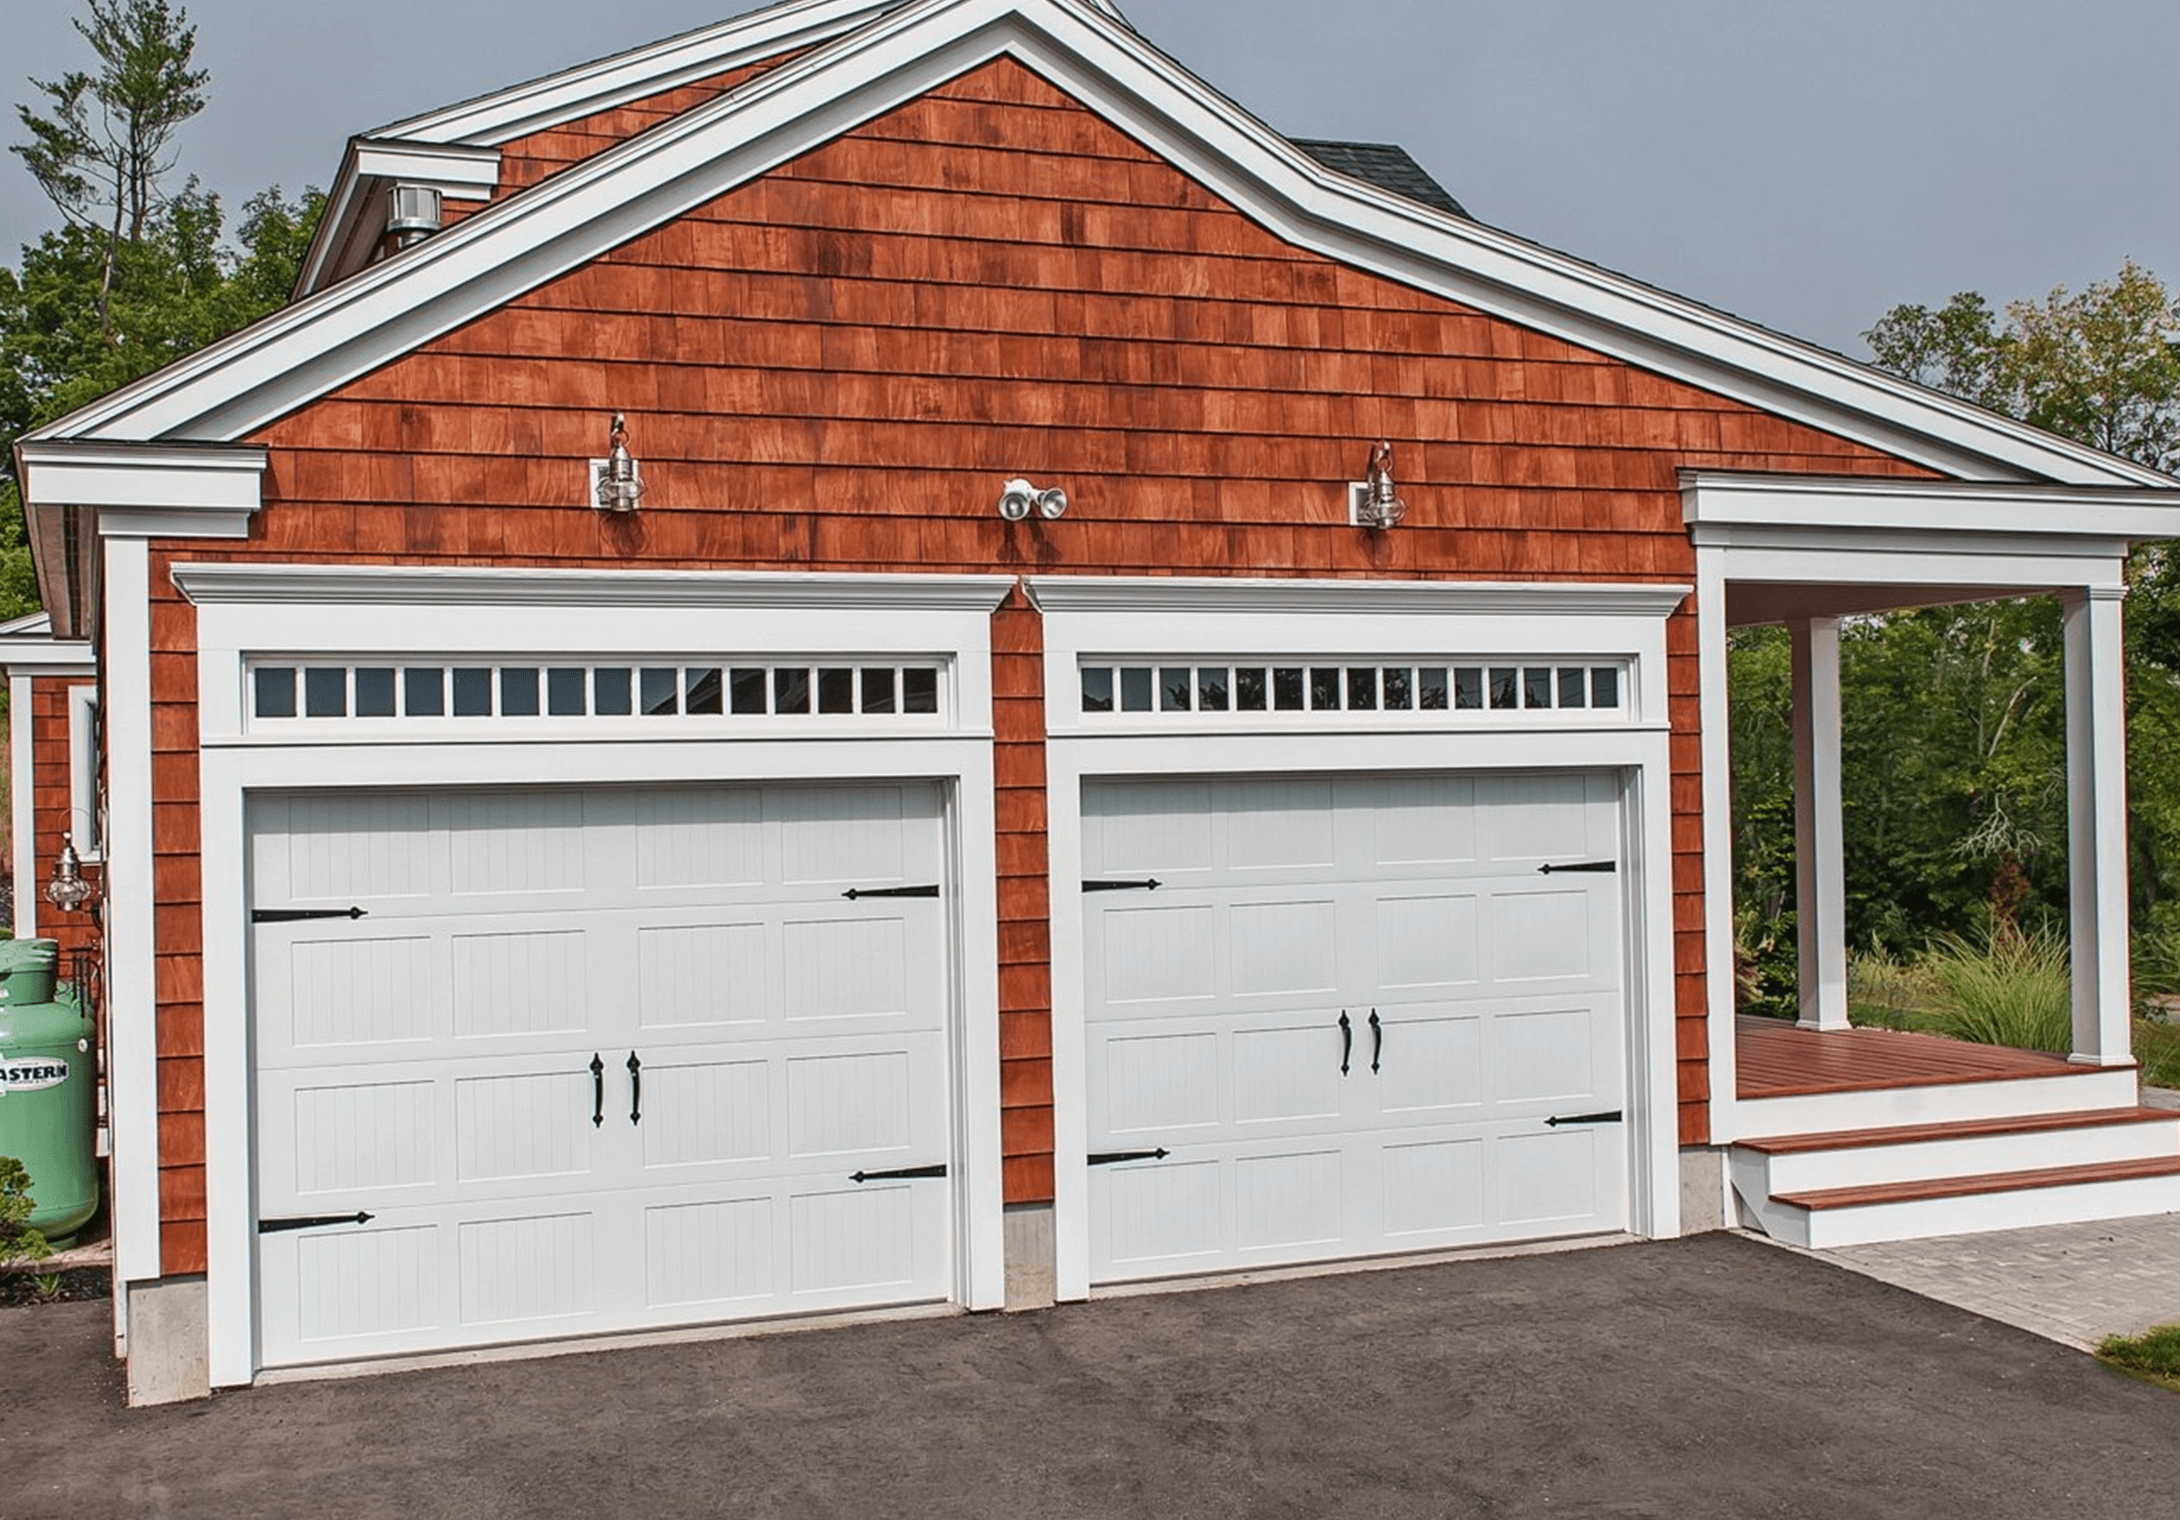 Basic Carriage House Garage Door with Decorative Hardware